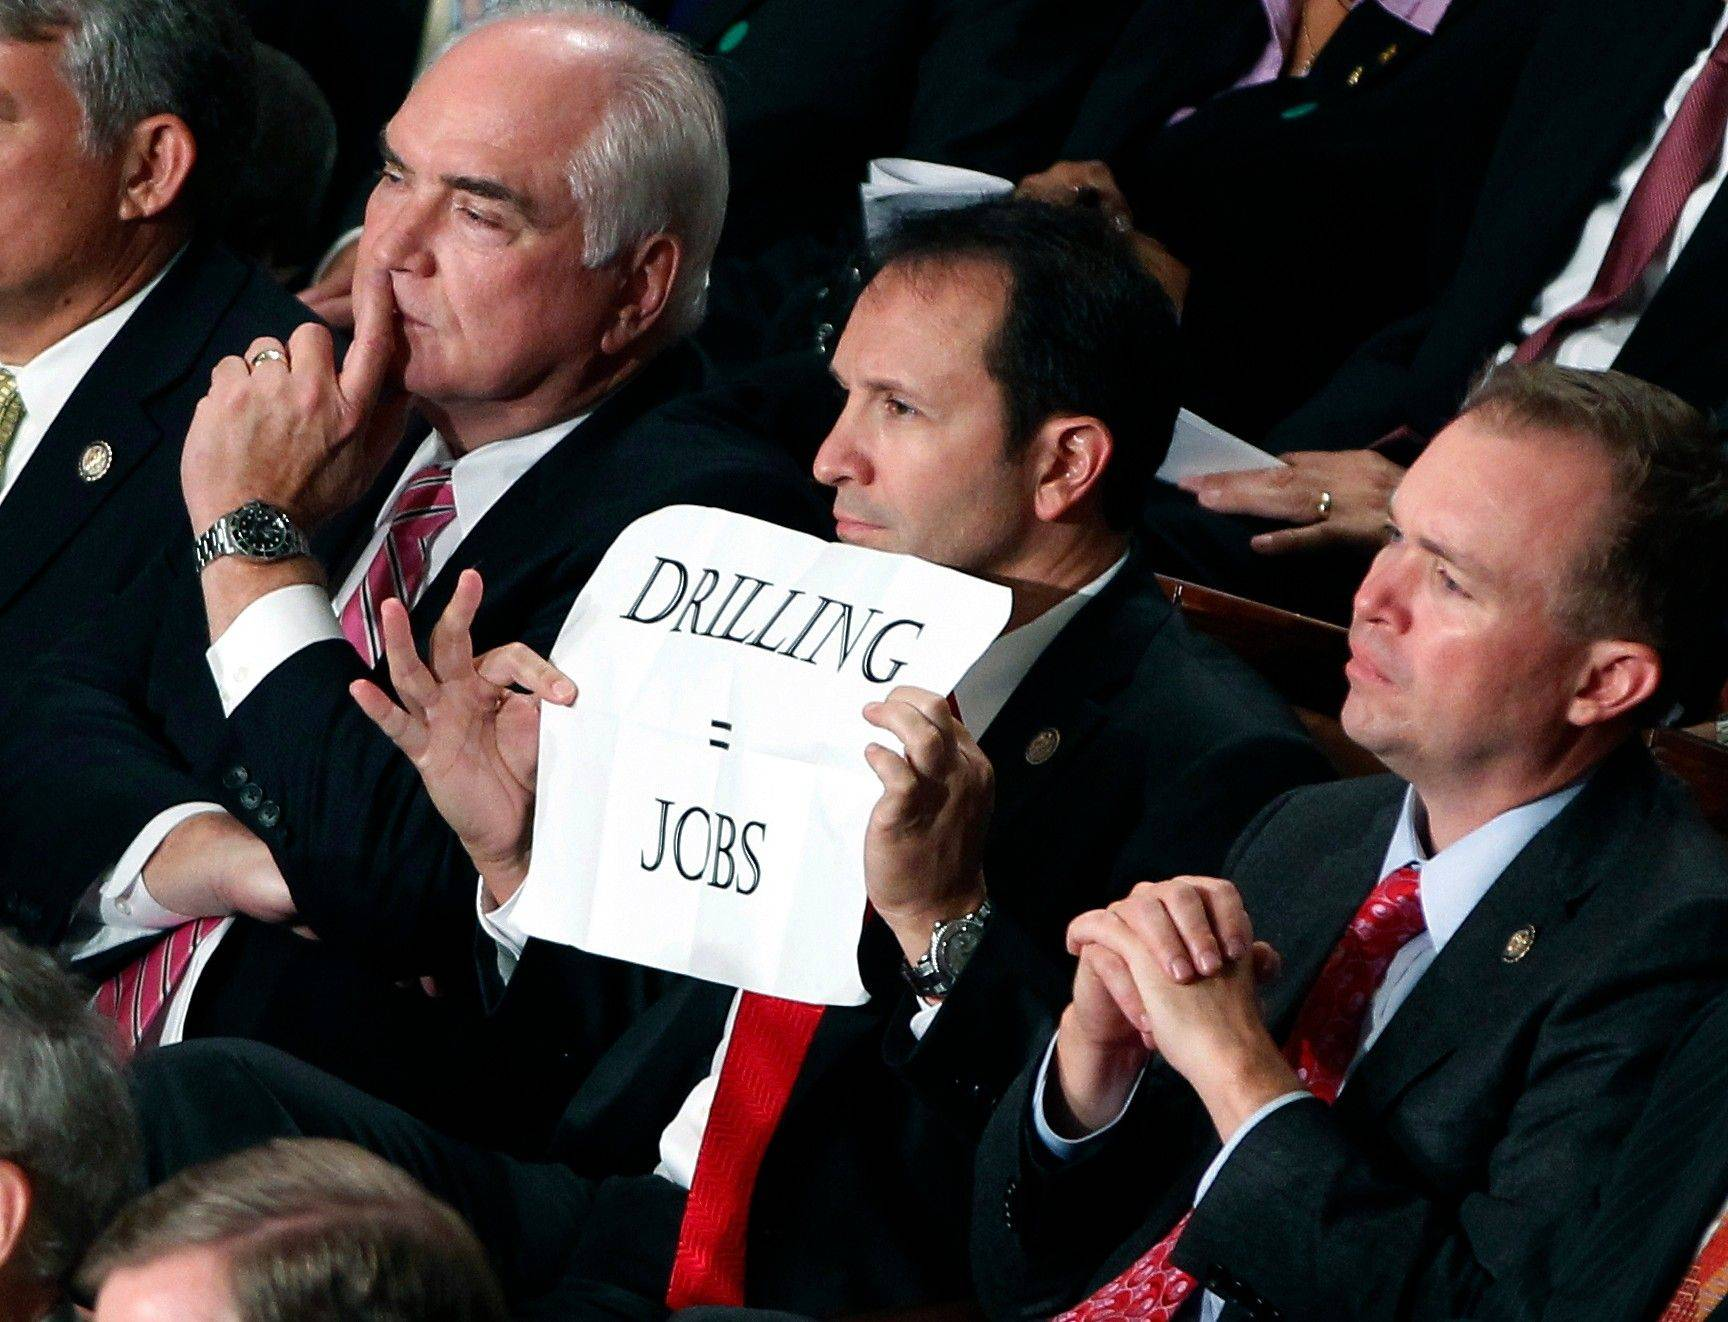 Lawmaker's sign cracks decorum at Obama job speech